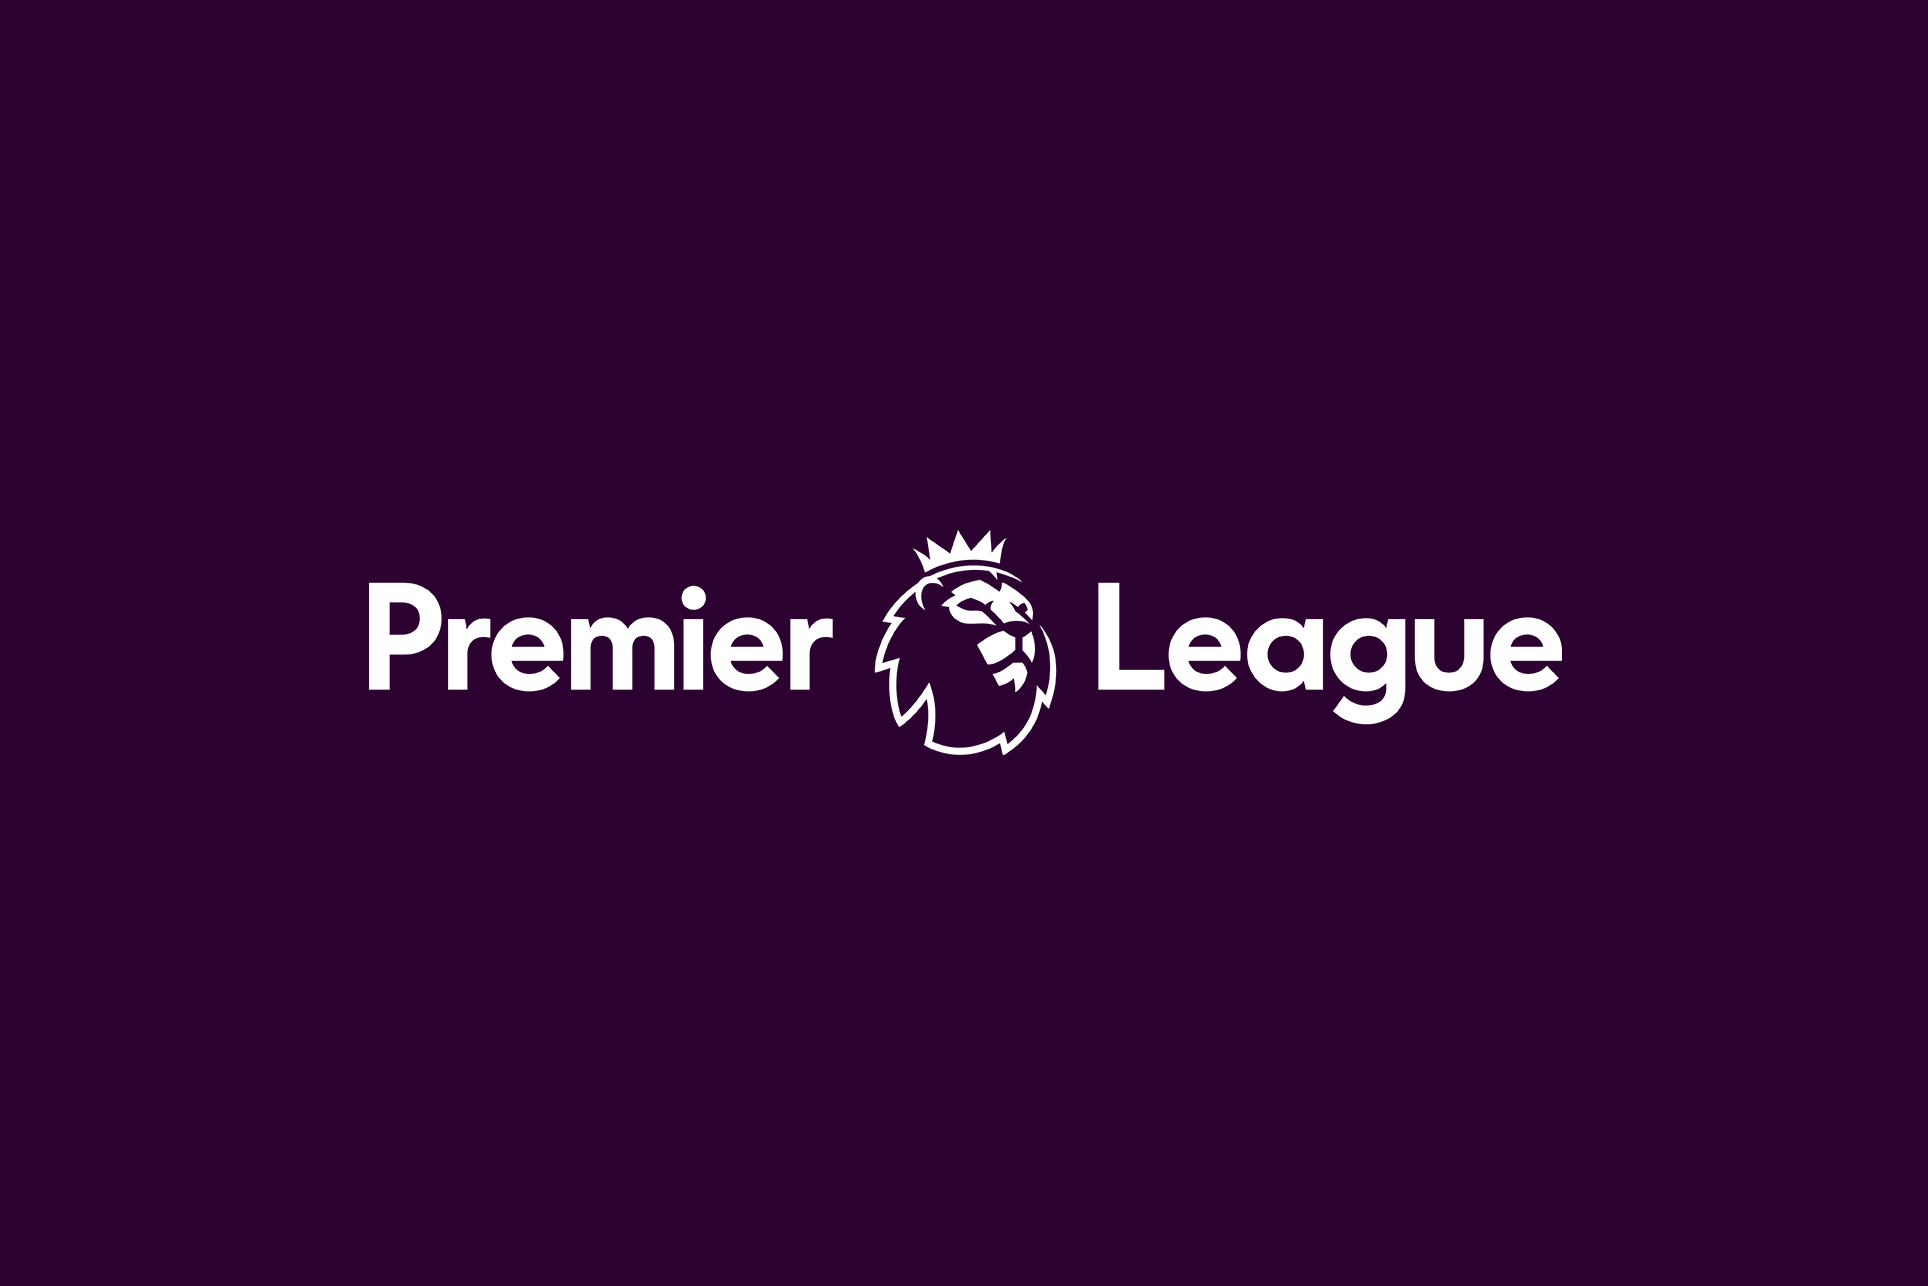 Premier League Awards Bein Sports Exclusive Rights In Mena